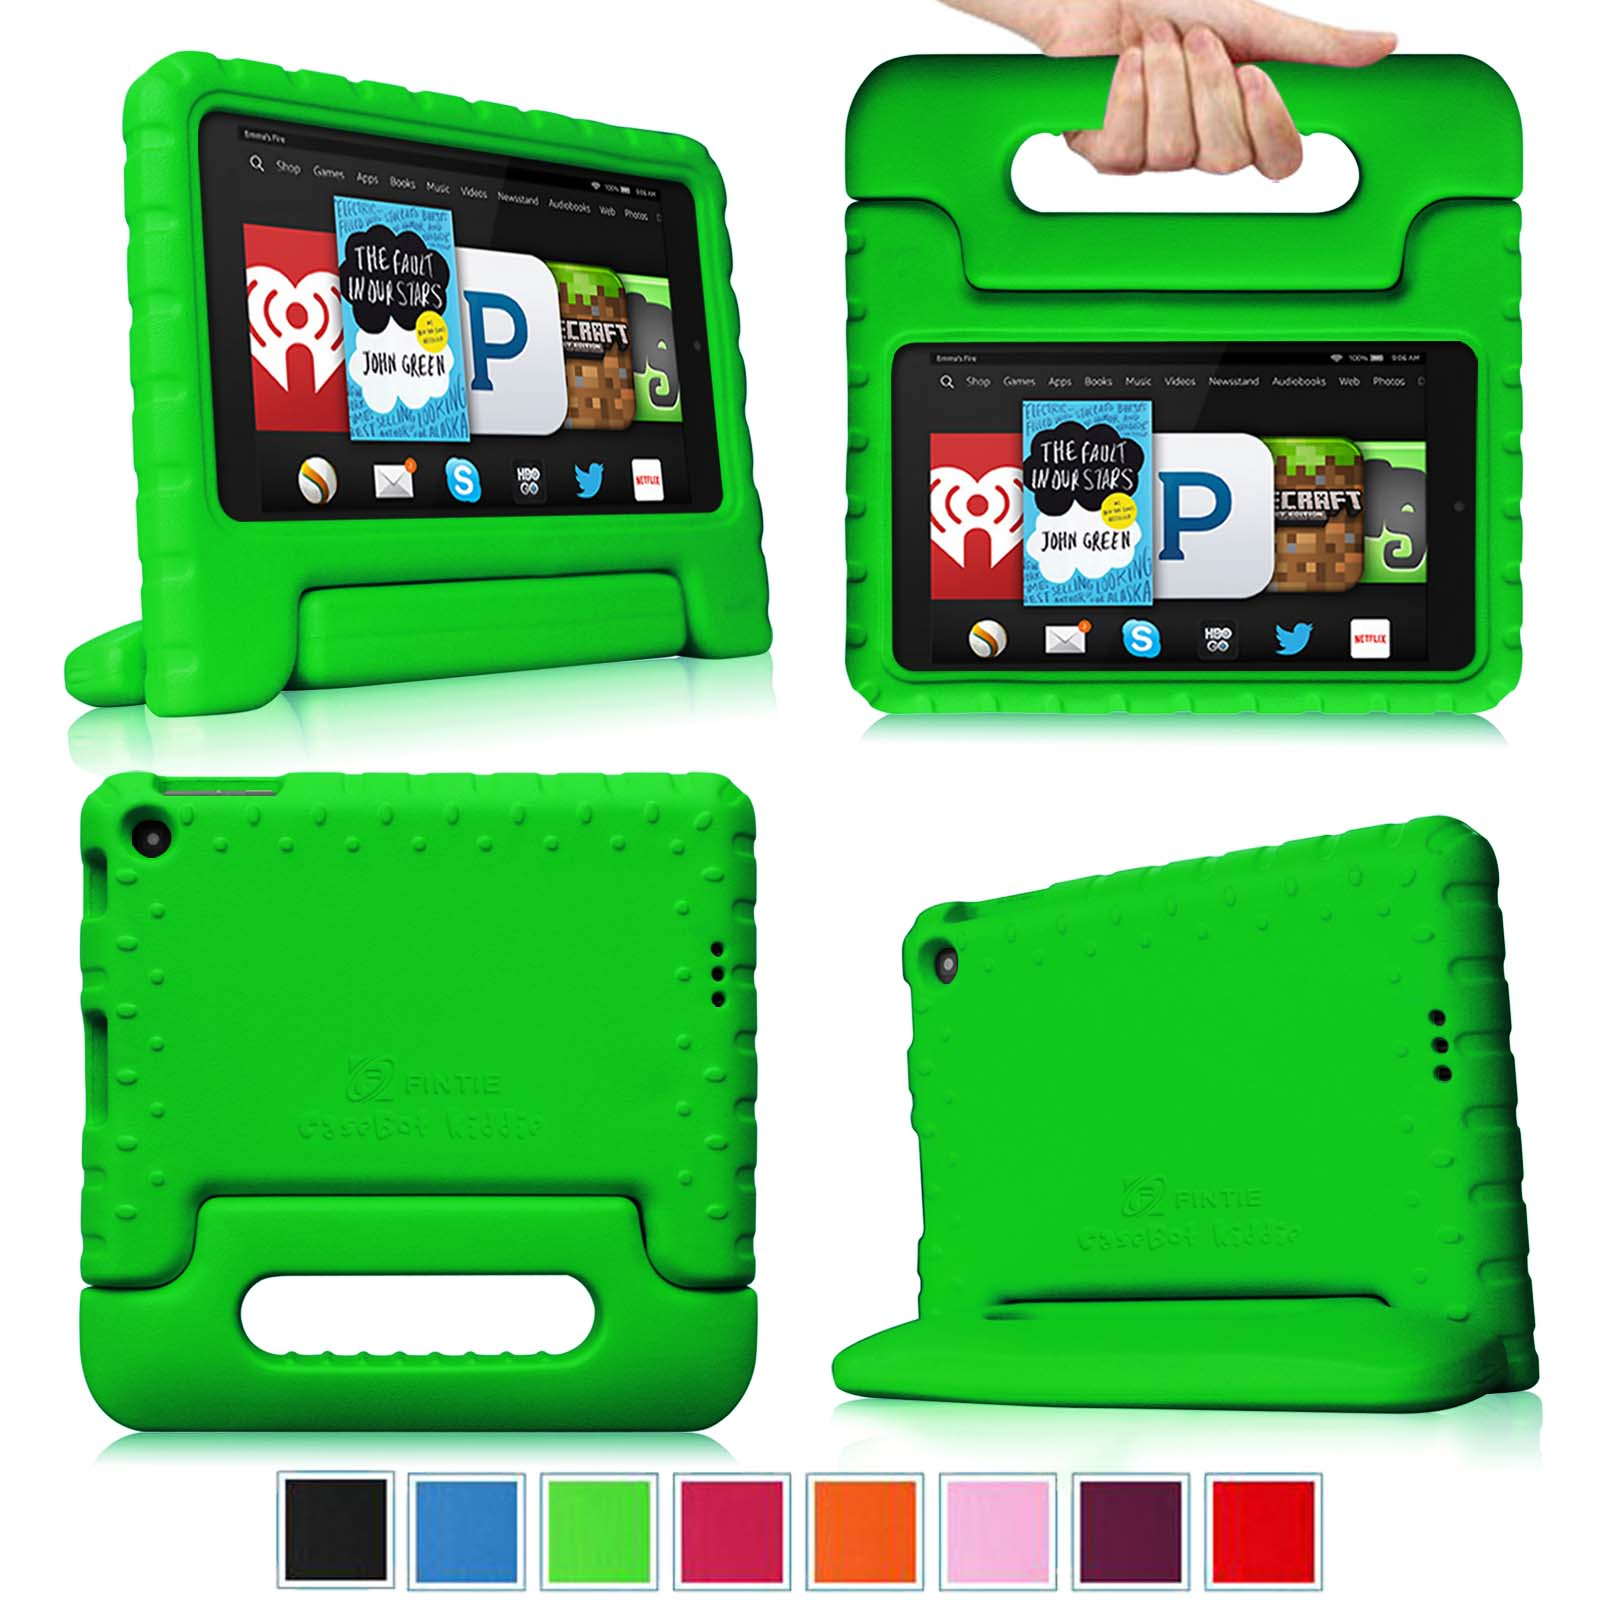 Fintie Light Weight Shock Proof Handle Case for Kids Specially made for Kindle Fire HD 6 2014 Oct Release, Green